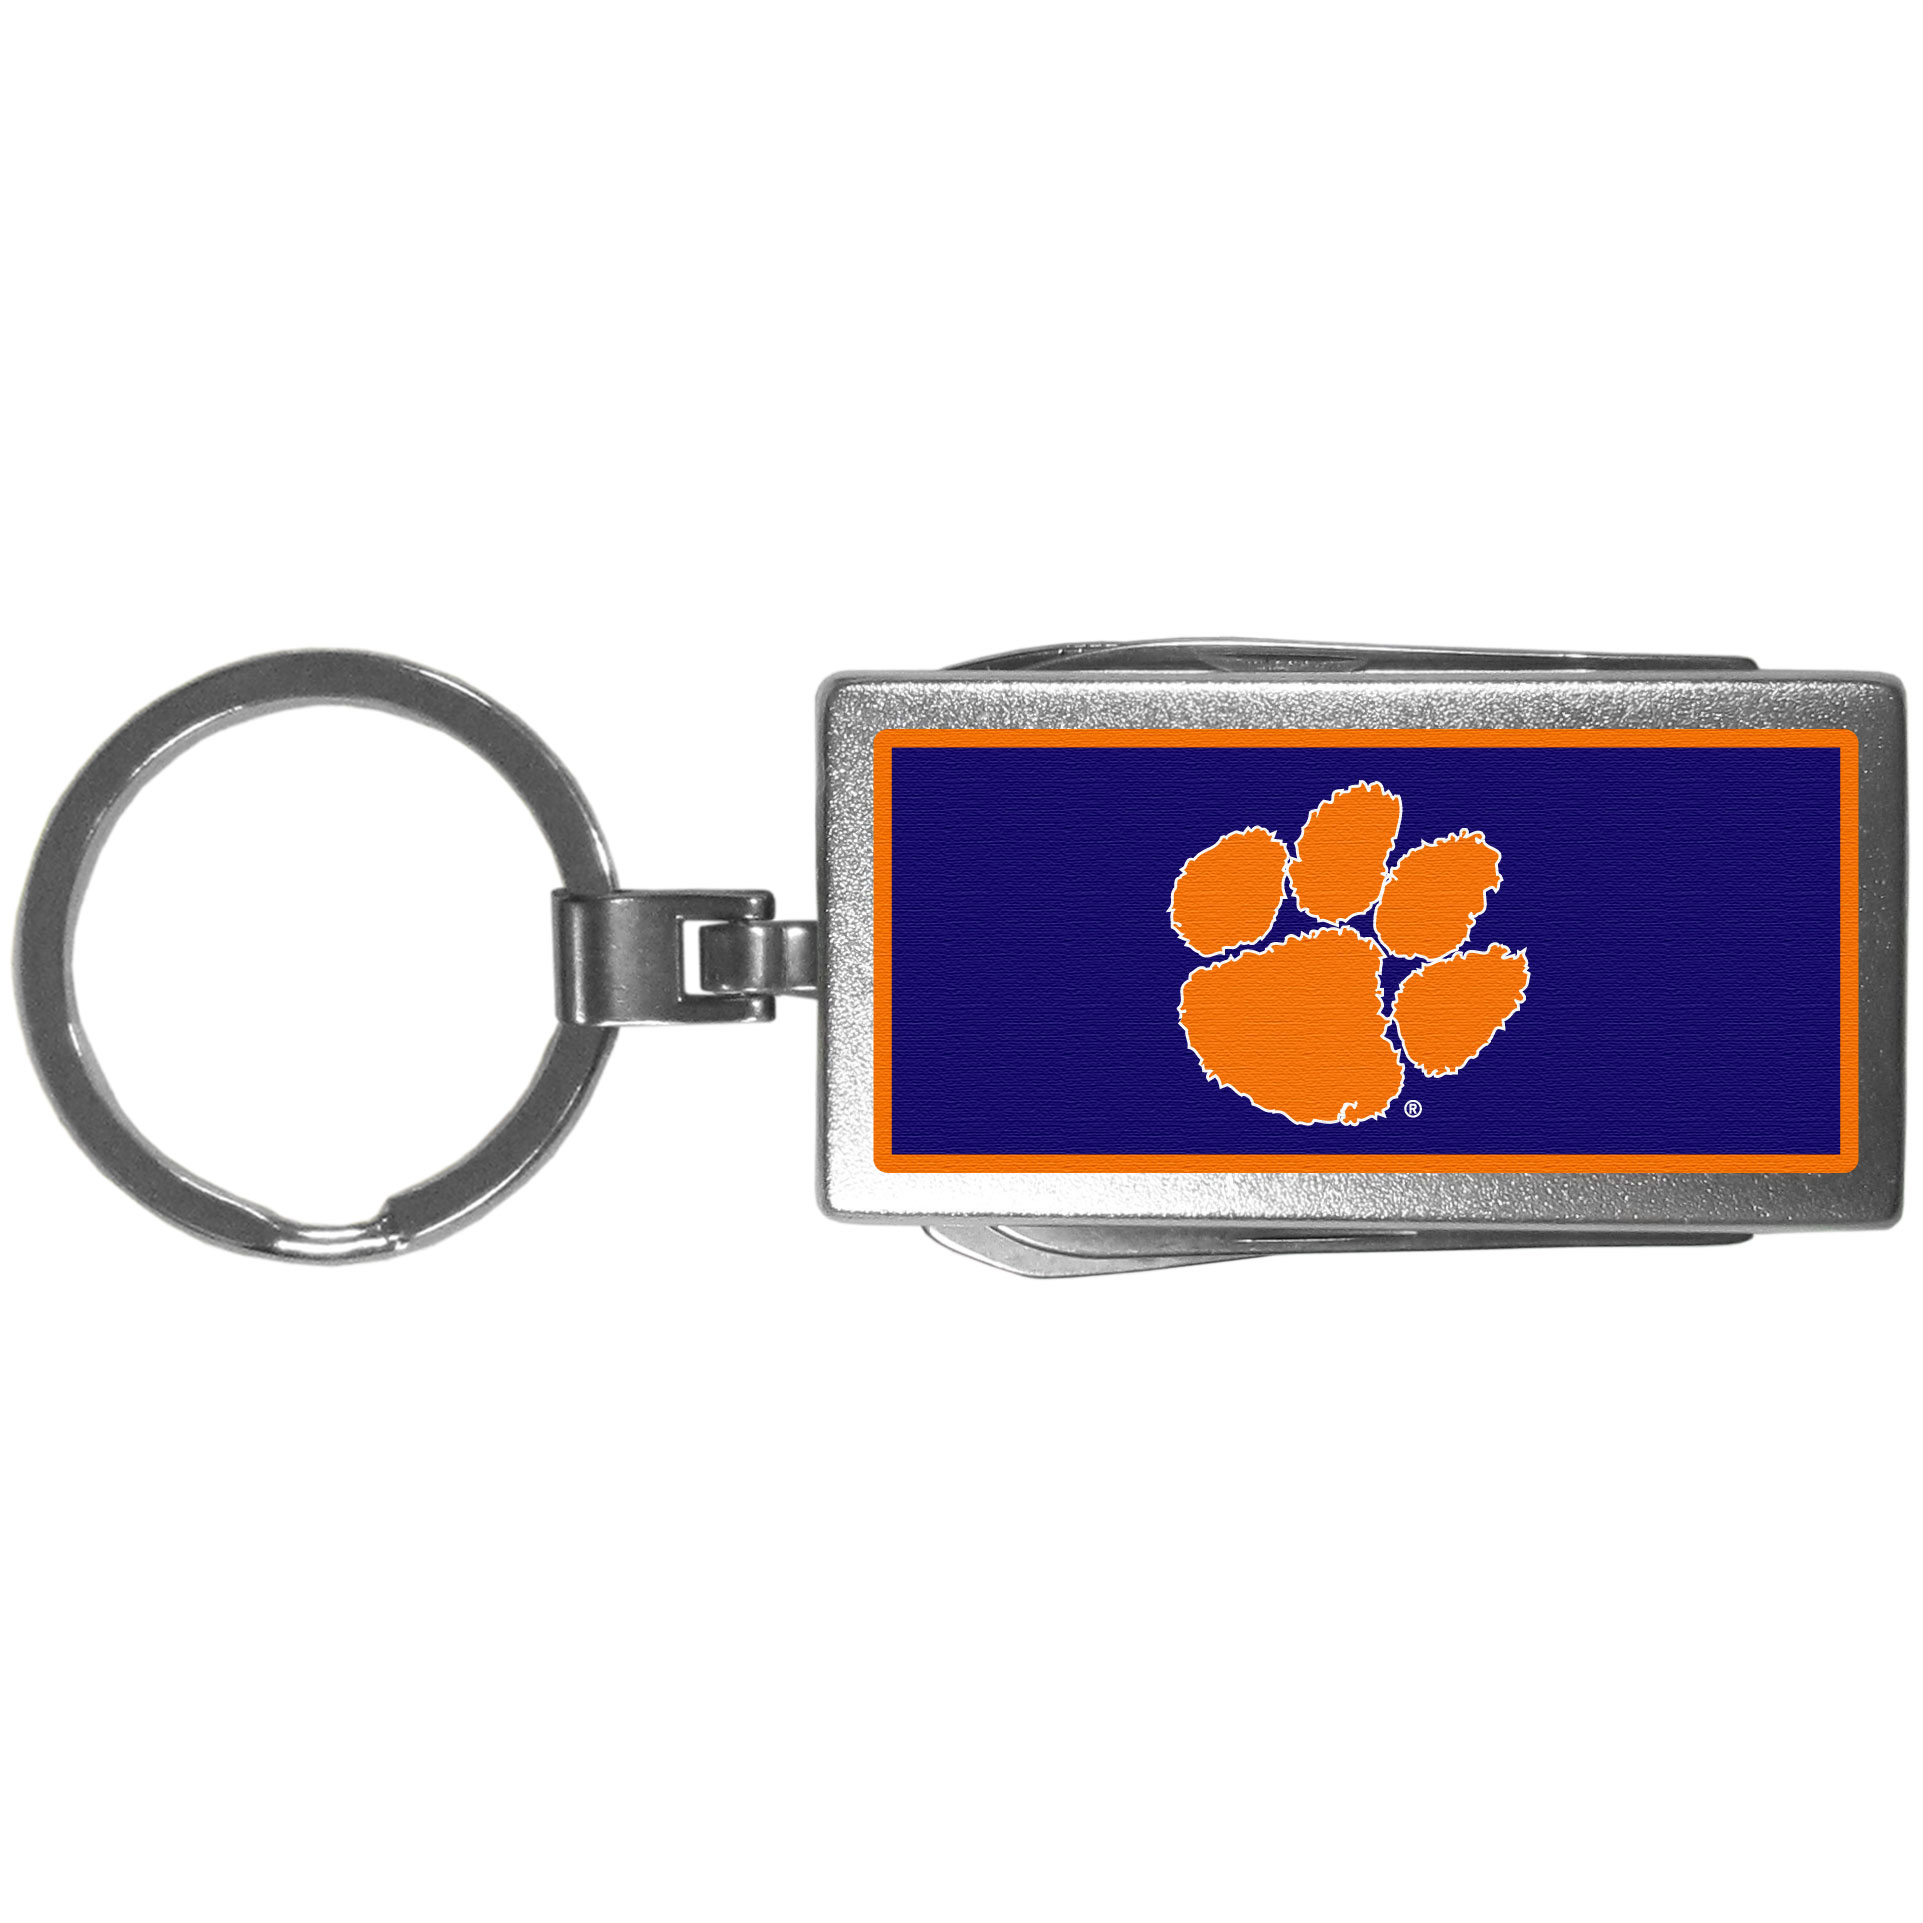 Clemson Tigers Multi-tool Key Chain, Logo - Be the hero at the tailgate, camping, or on a Friday night with your Clemson Tigers Multi-Tool Keychain which comes complete with bottle opener, scissors, knife, nail file and screw driver. Be it opening a package or a beverage Siskiyou's Multi-Tool Keychain goes wherever your keys do. The keychain hangs at 4 inches long when closed.